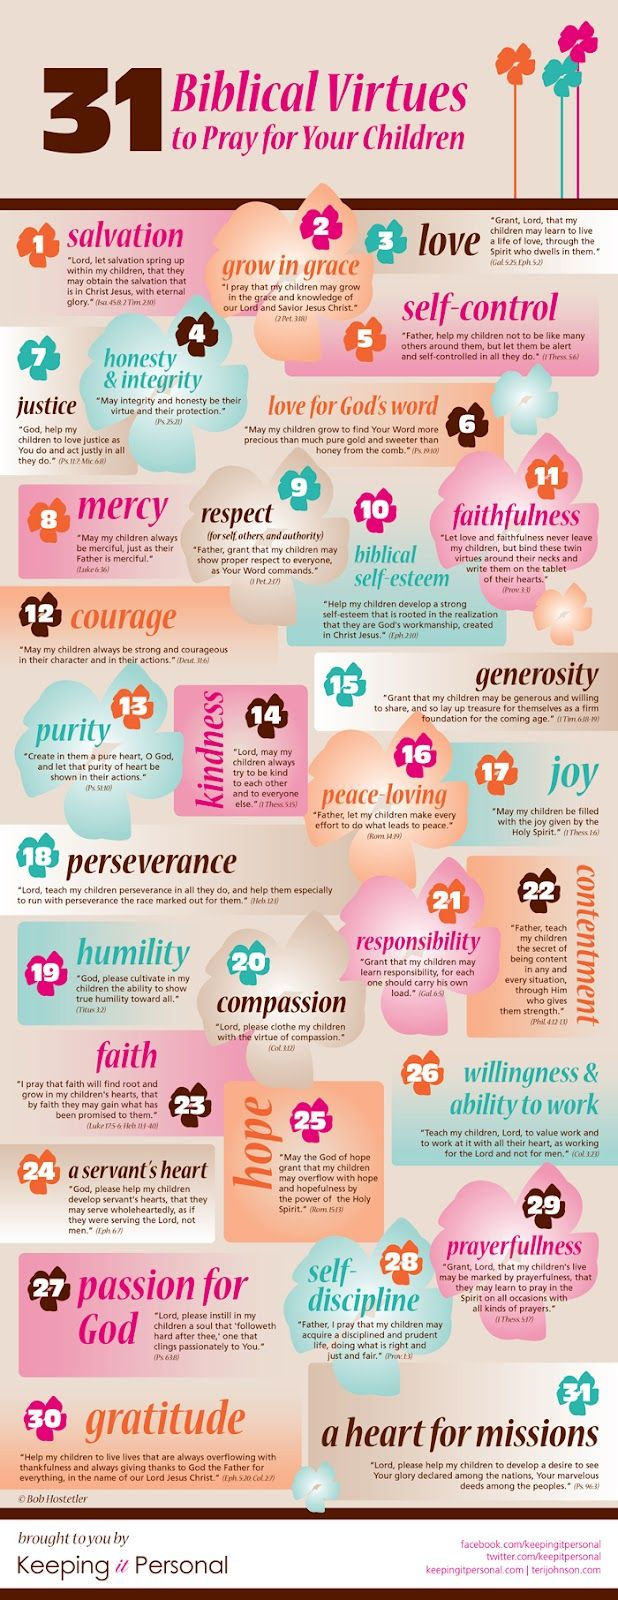 31 Biblical Virtues to pray for children